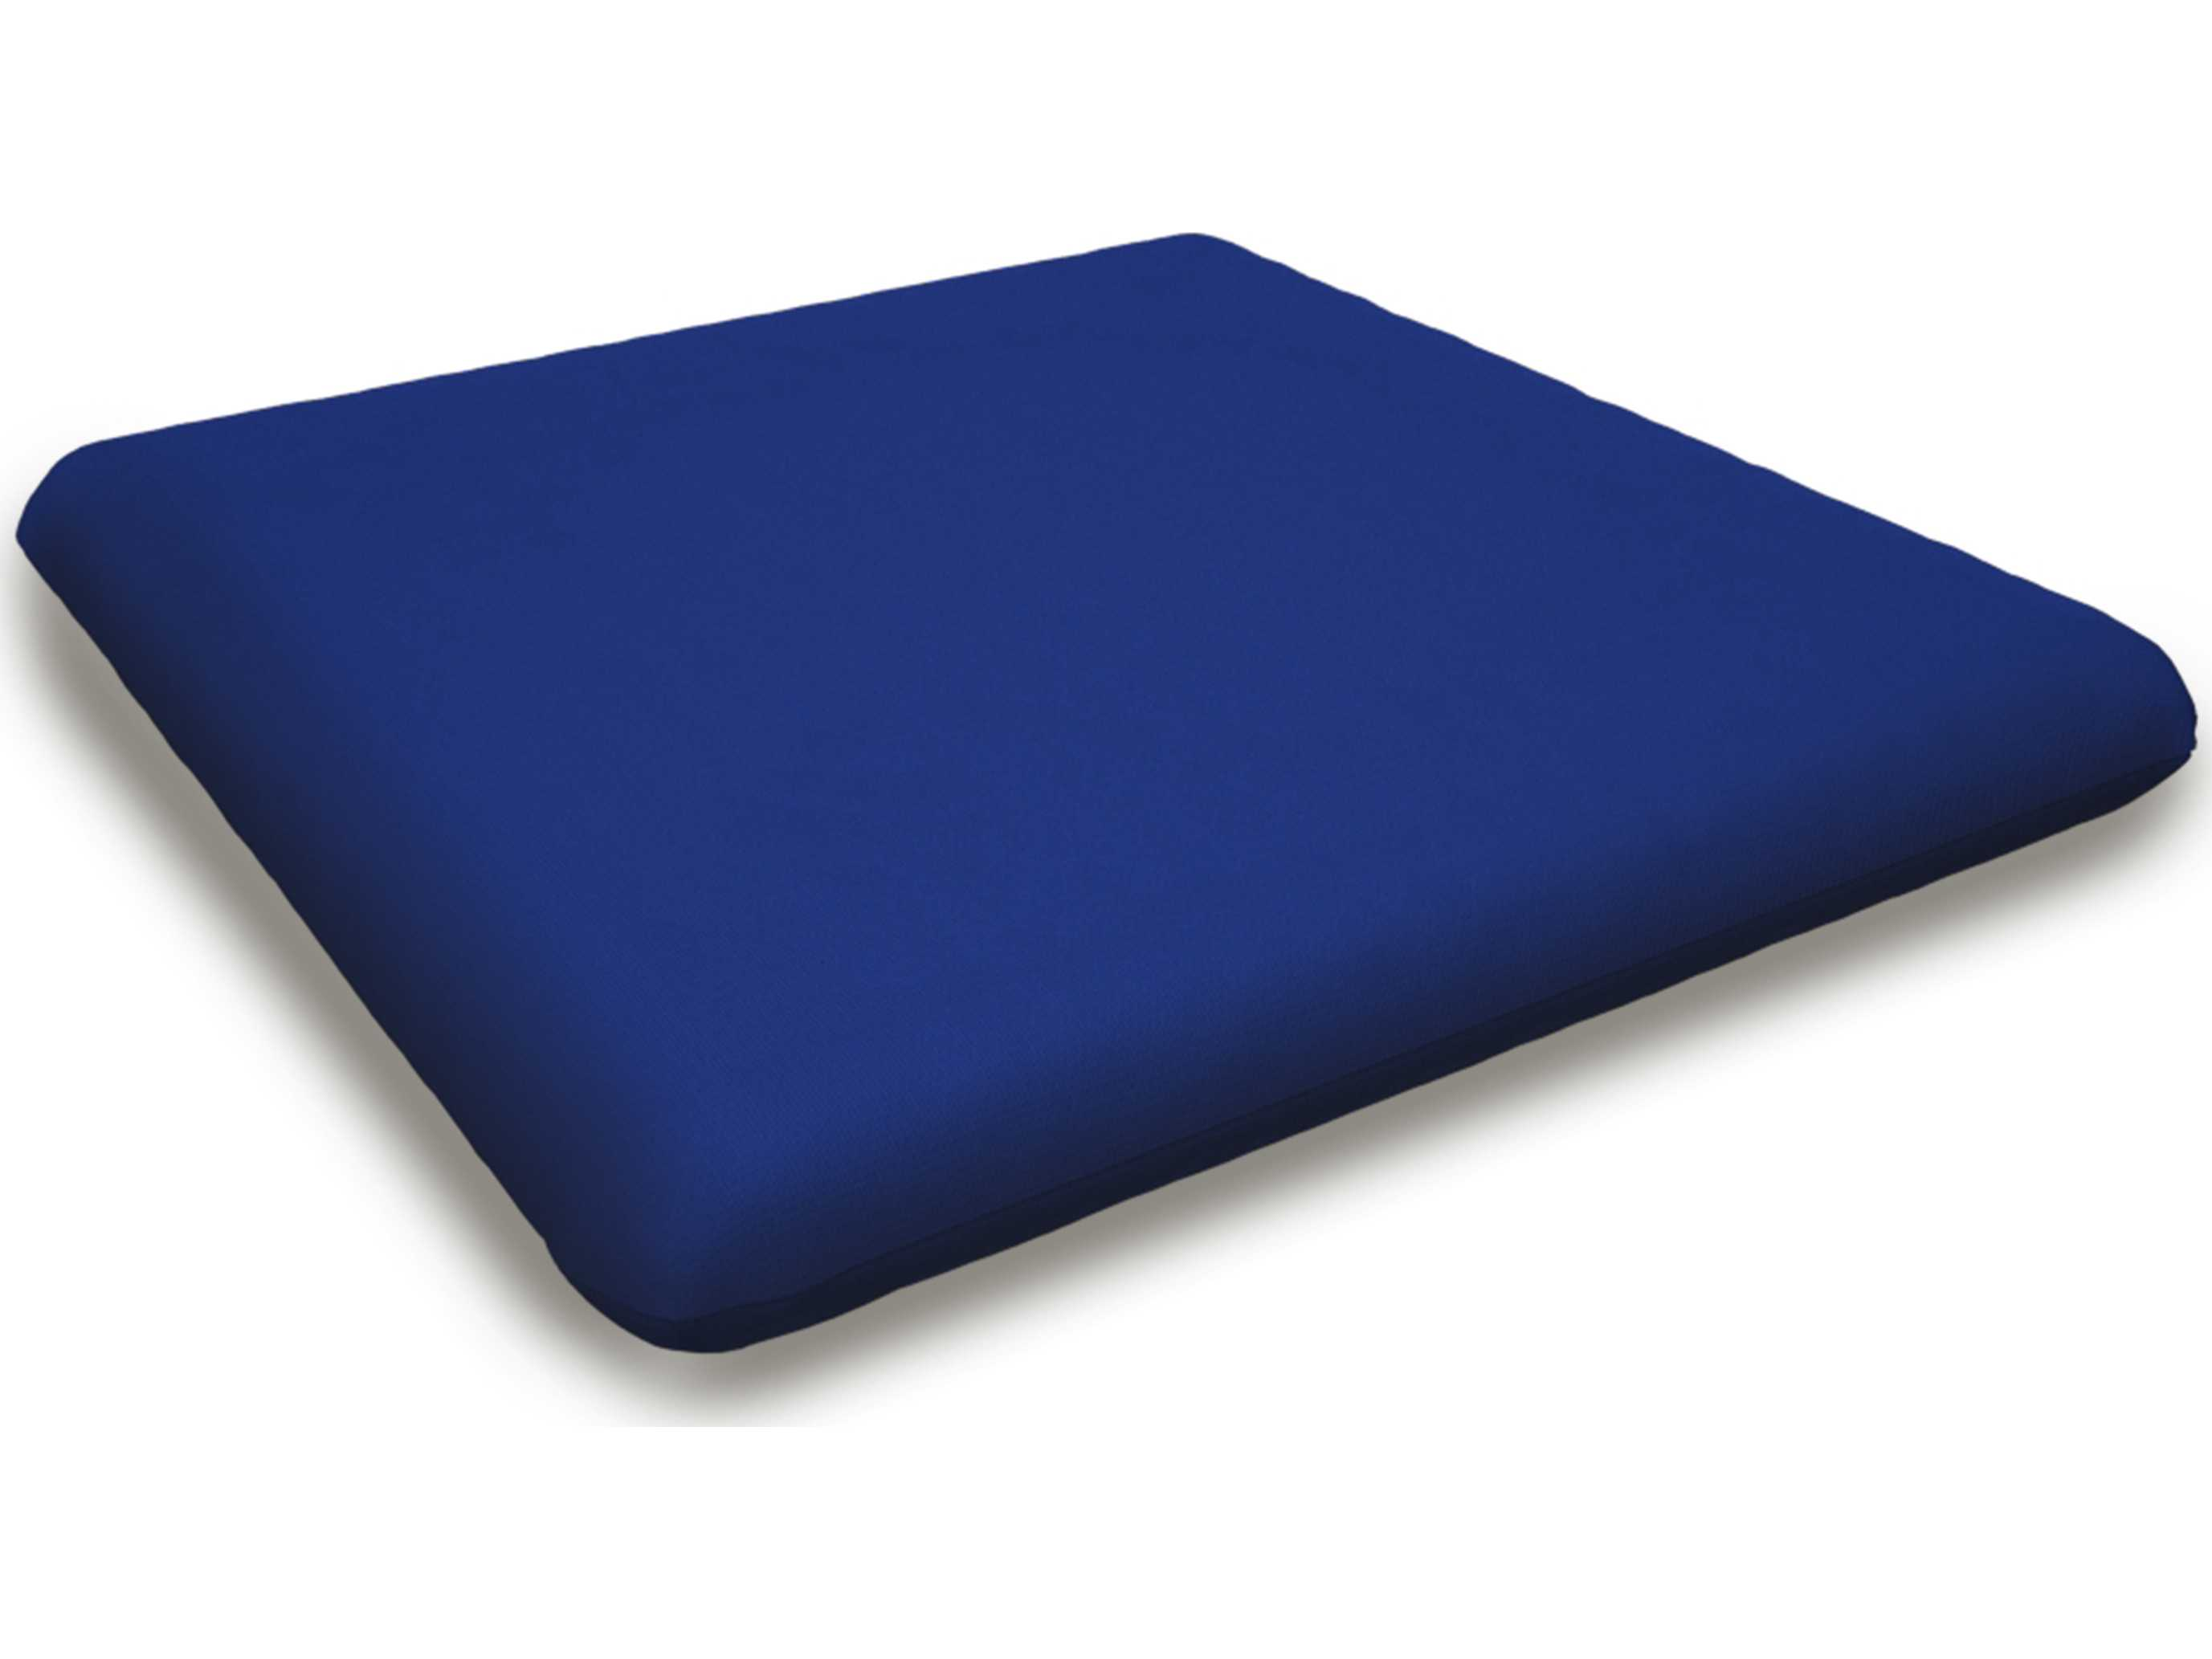 Wheelchair Seat Cushions Product : Polywood euro replacement chair seat cushion xpws